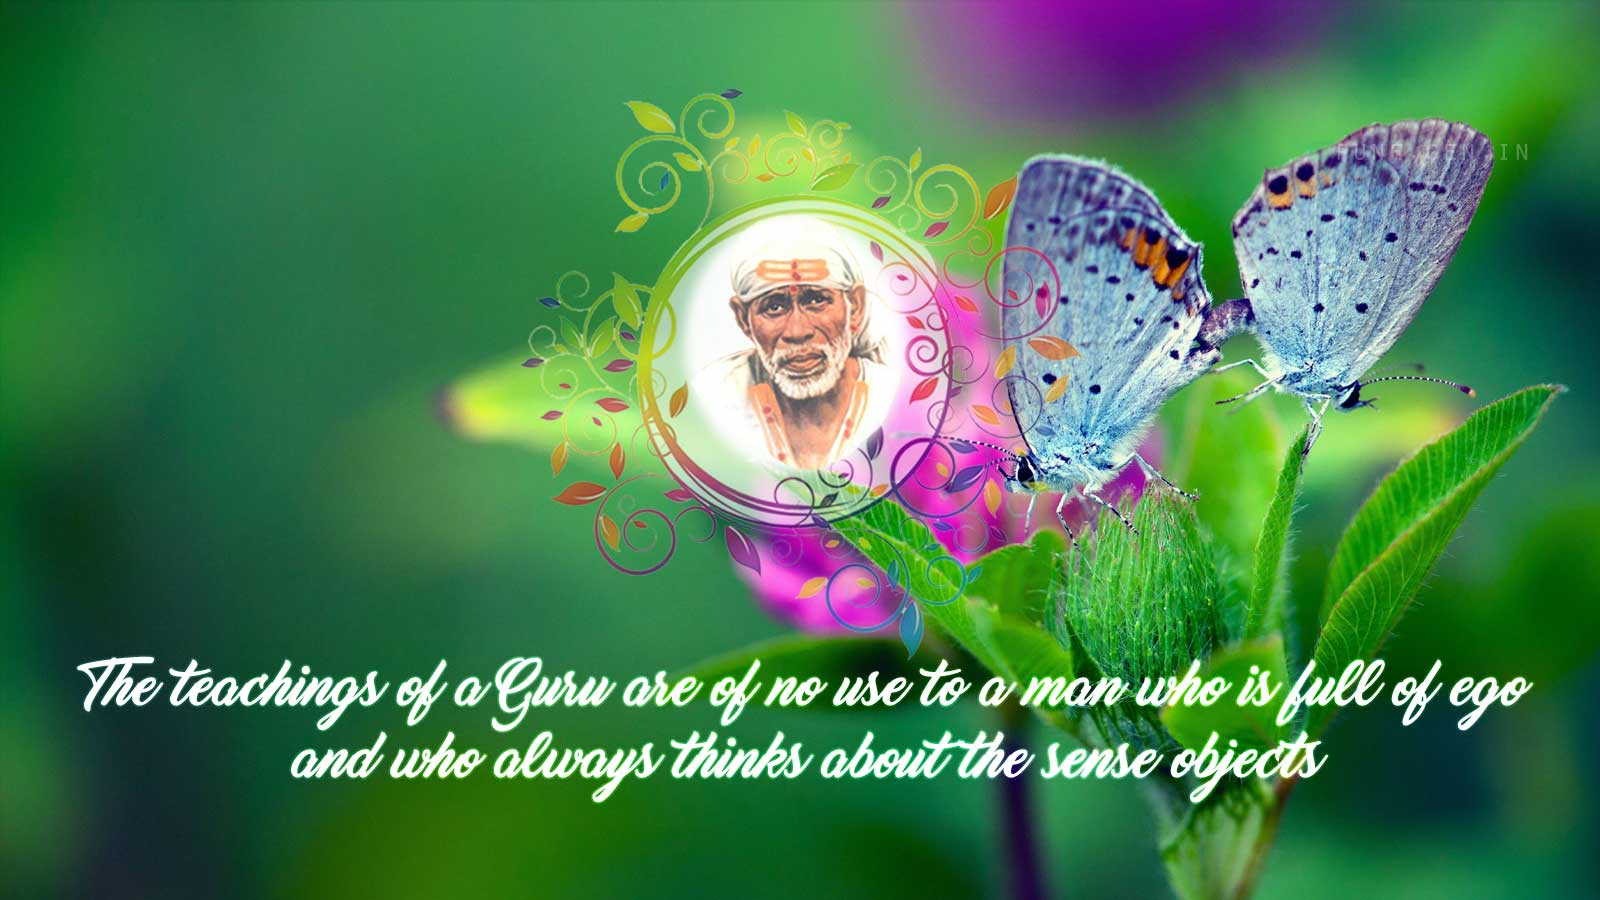 Sai Baba Teaching's : The teachings of a Guru…